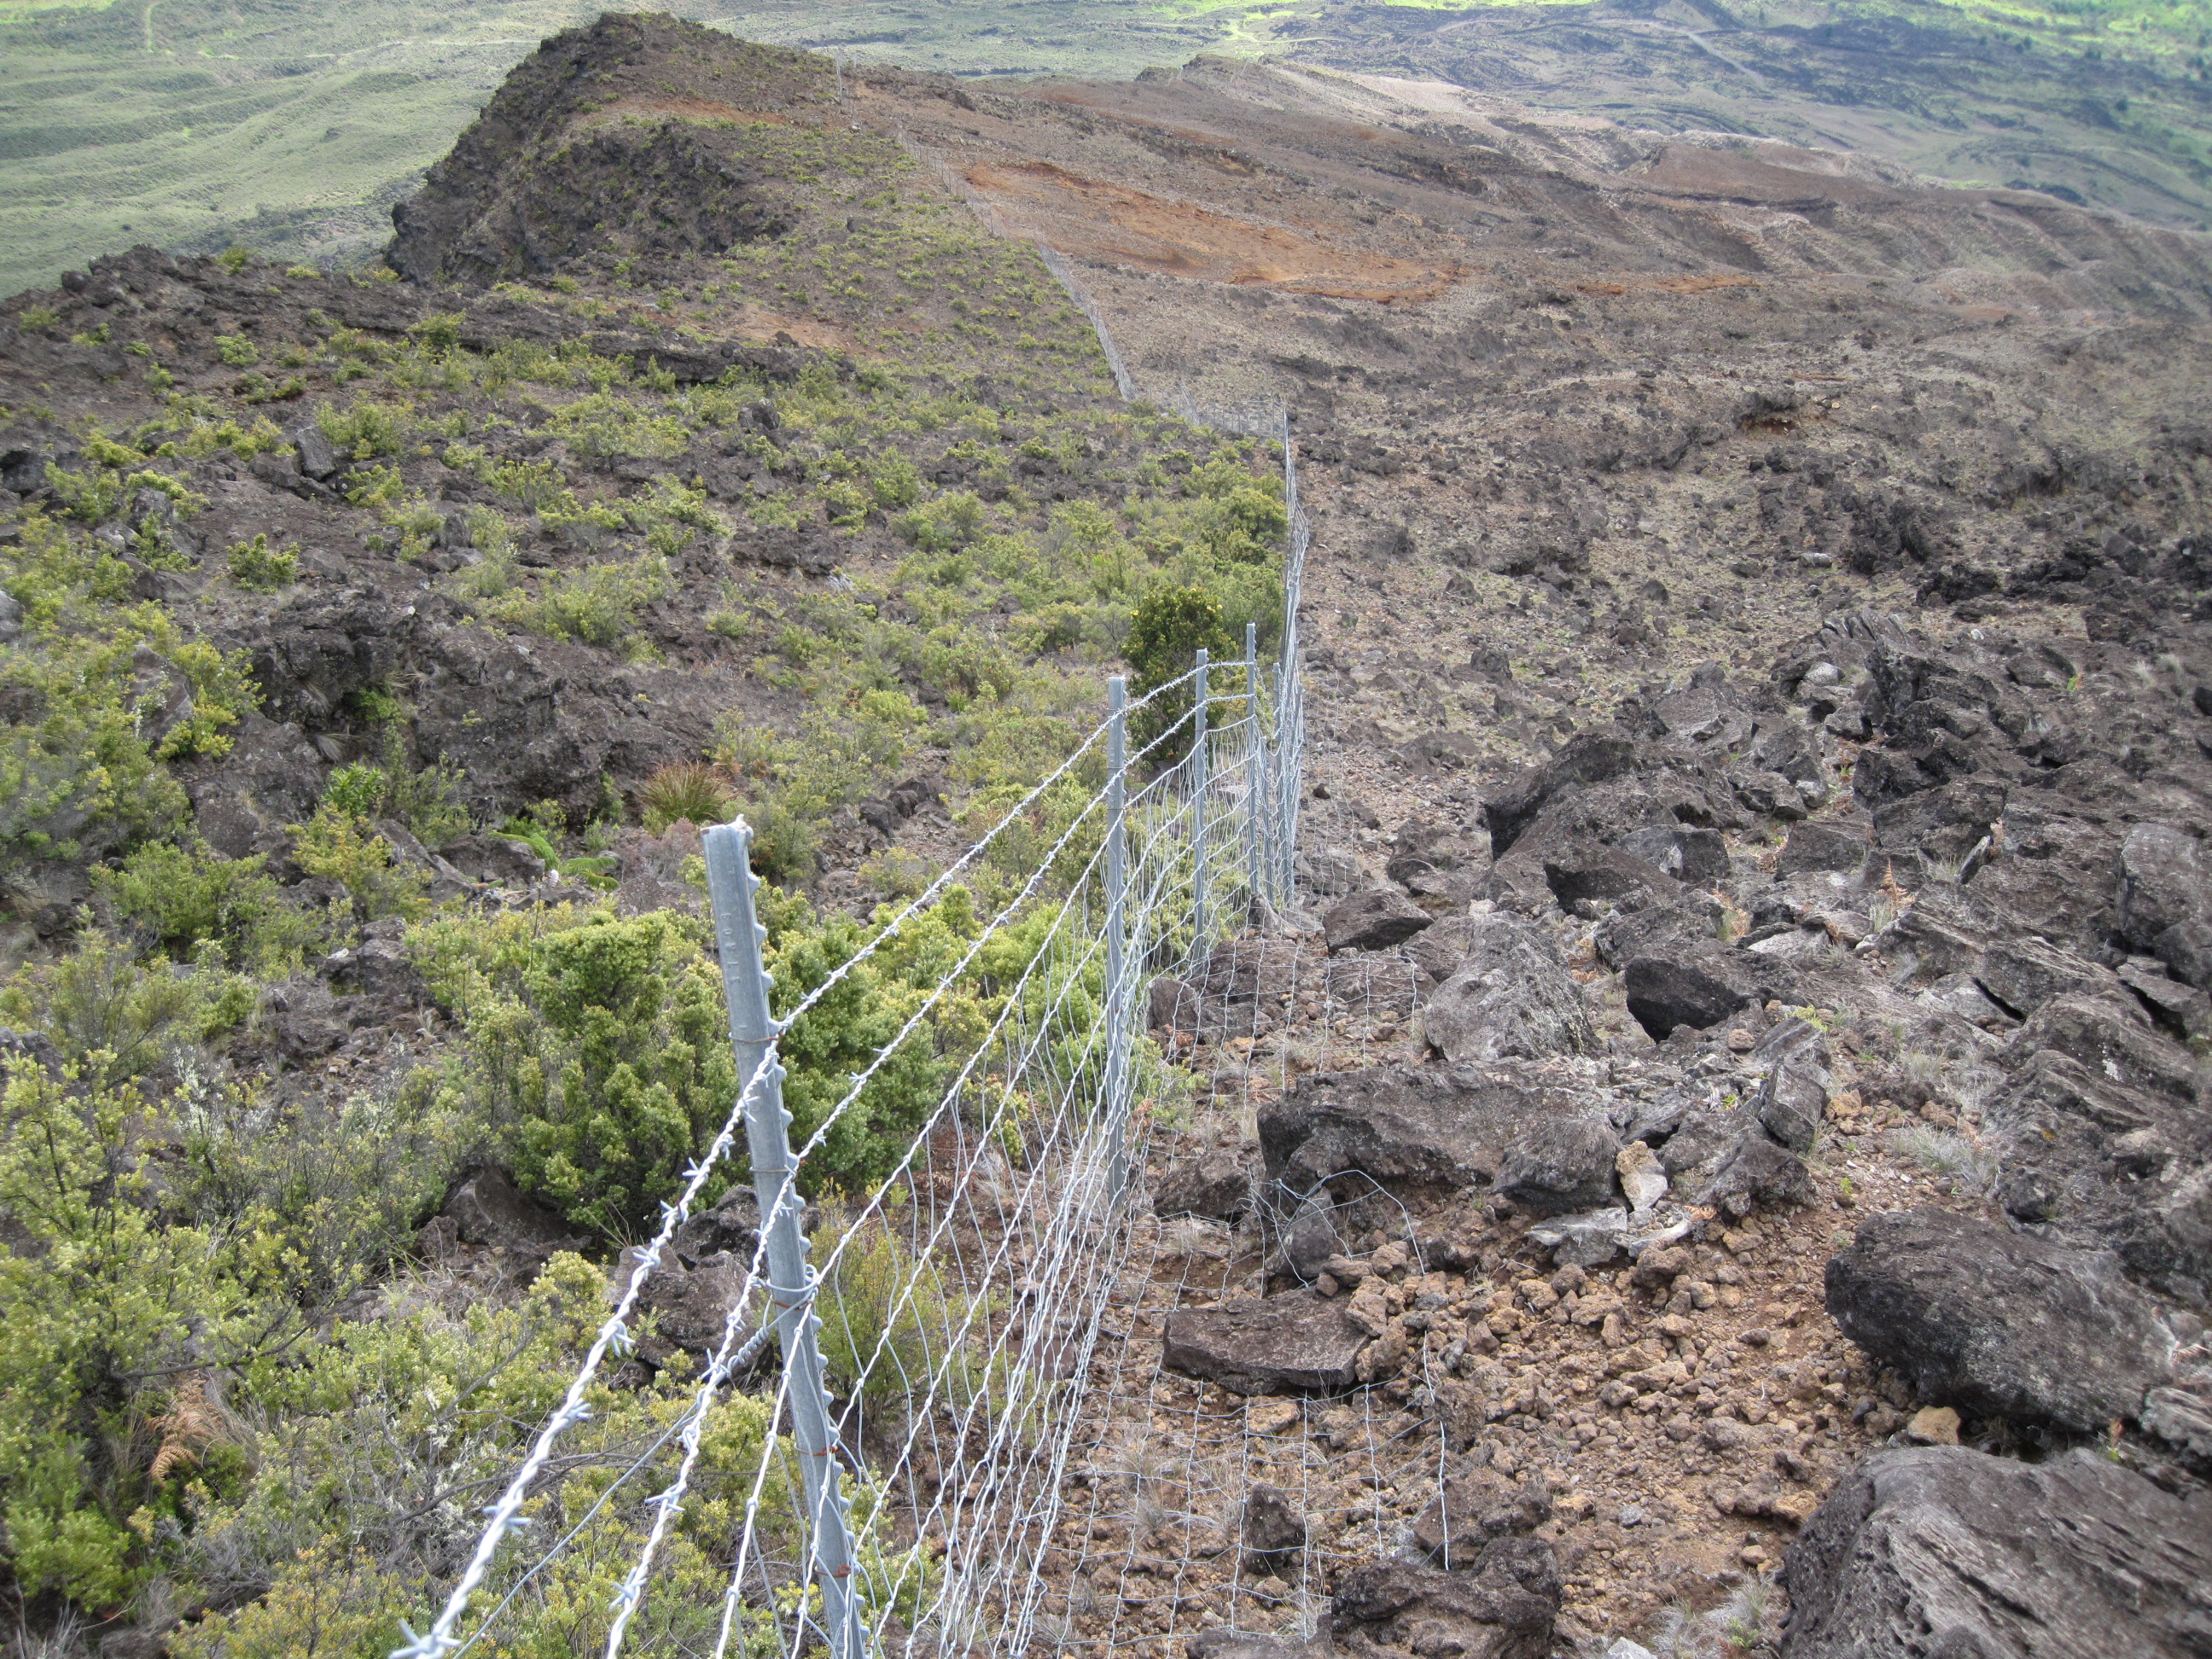 Existing park boundary fence along the upper elevations near Nu'u and Kaupo Gap. Left side shows habitat recovery. Right side shows areas impacted by feral animals.